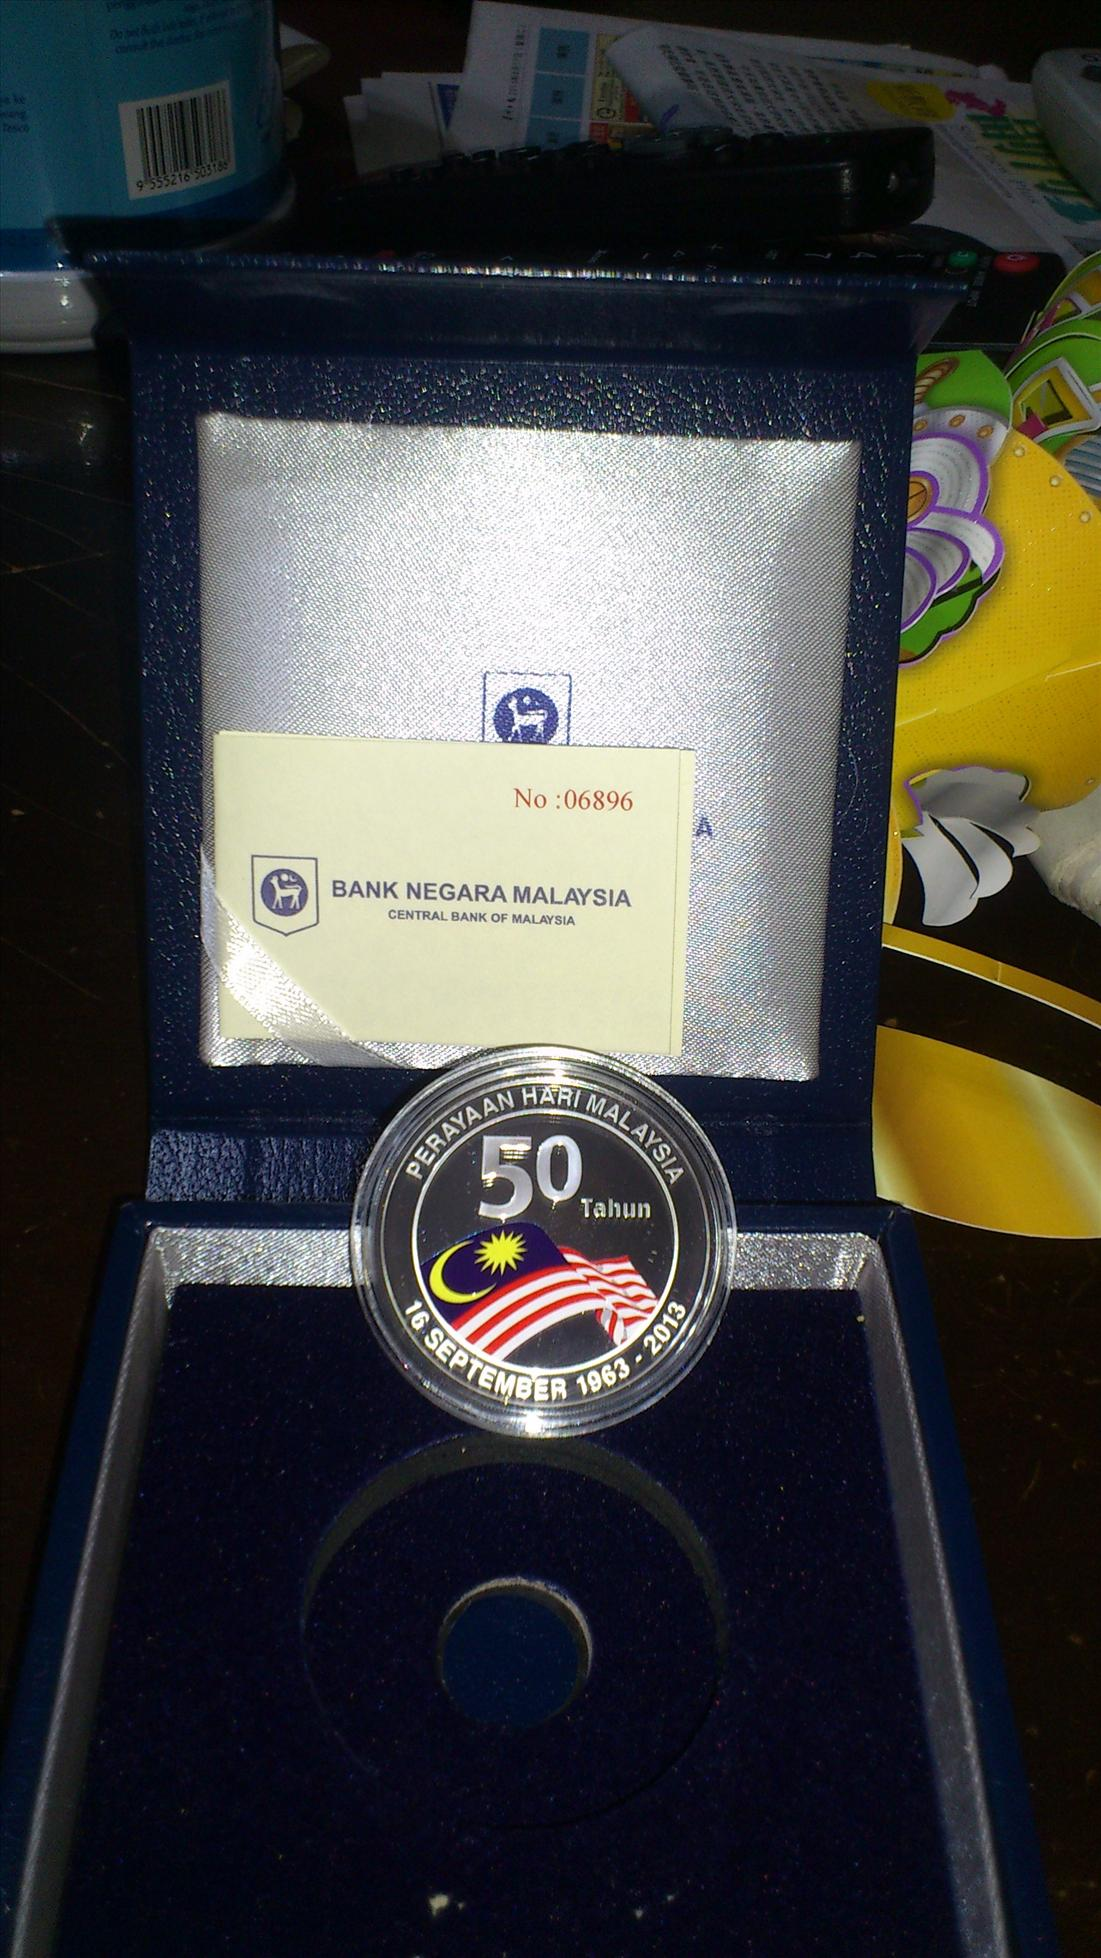 50th Malaysia Merdeka Formation Day, Silver Proof coin